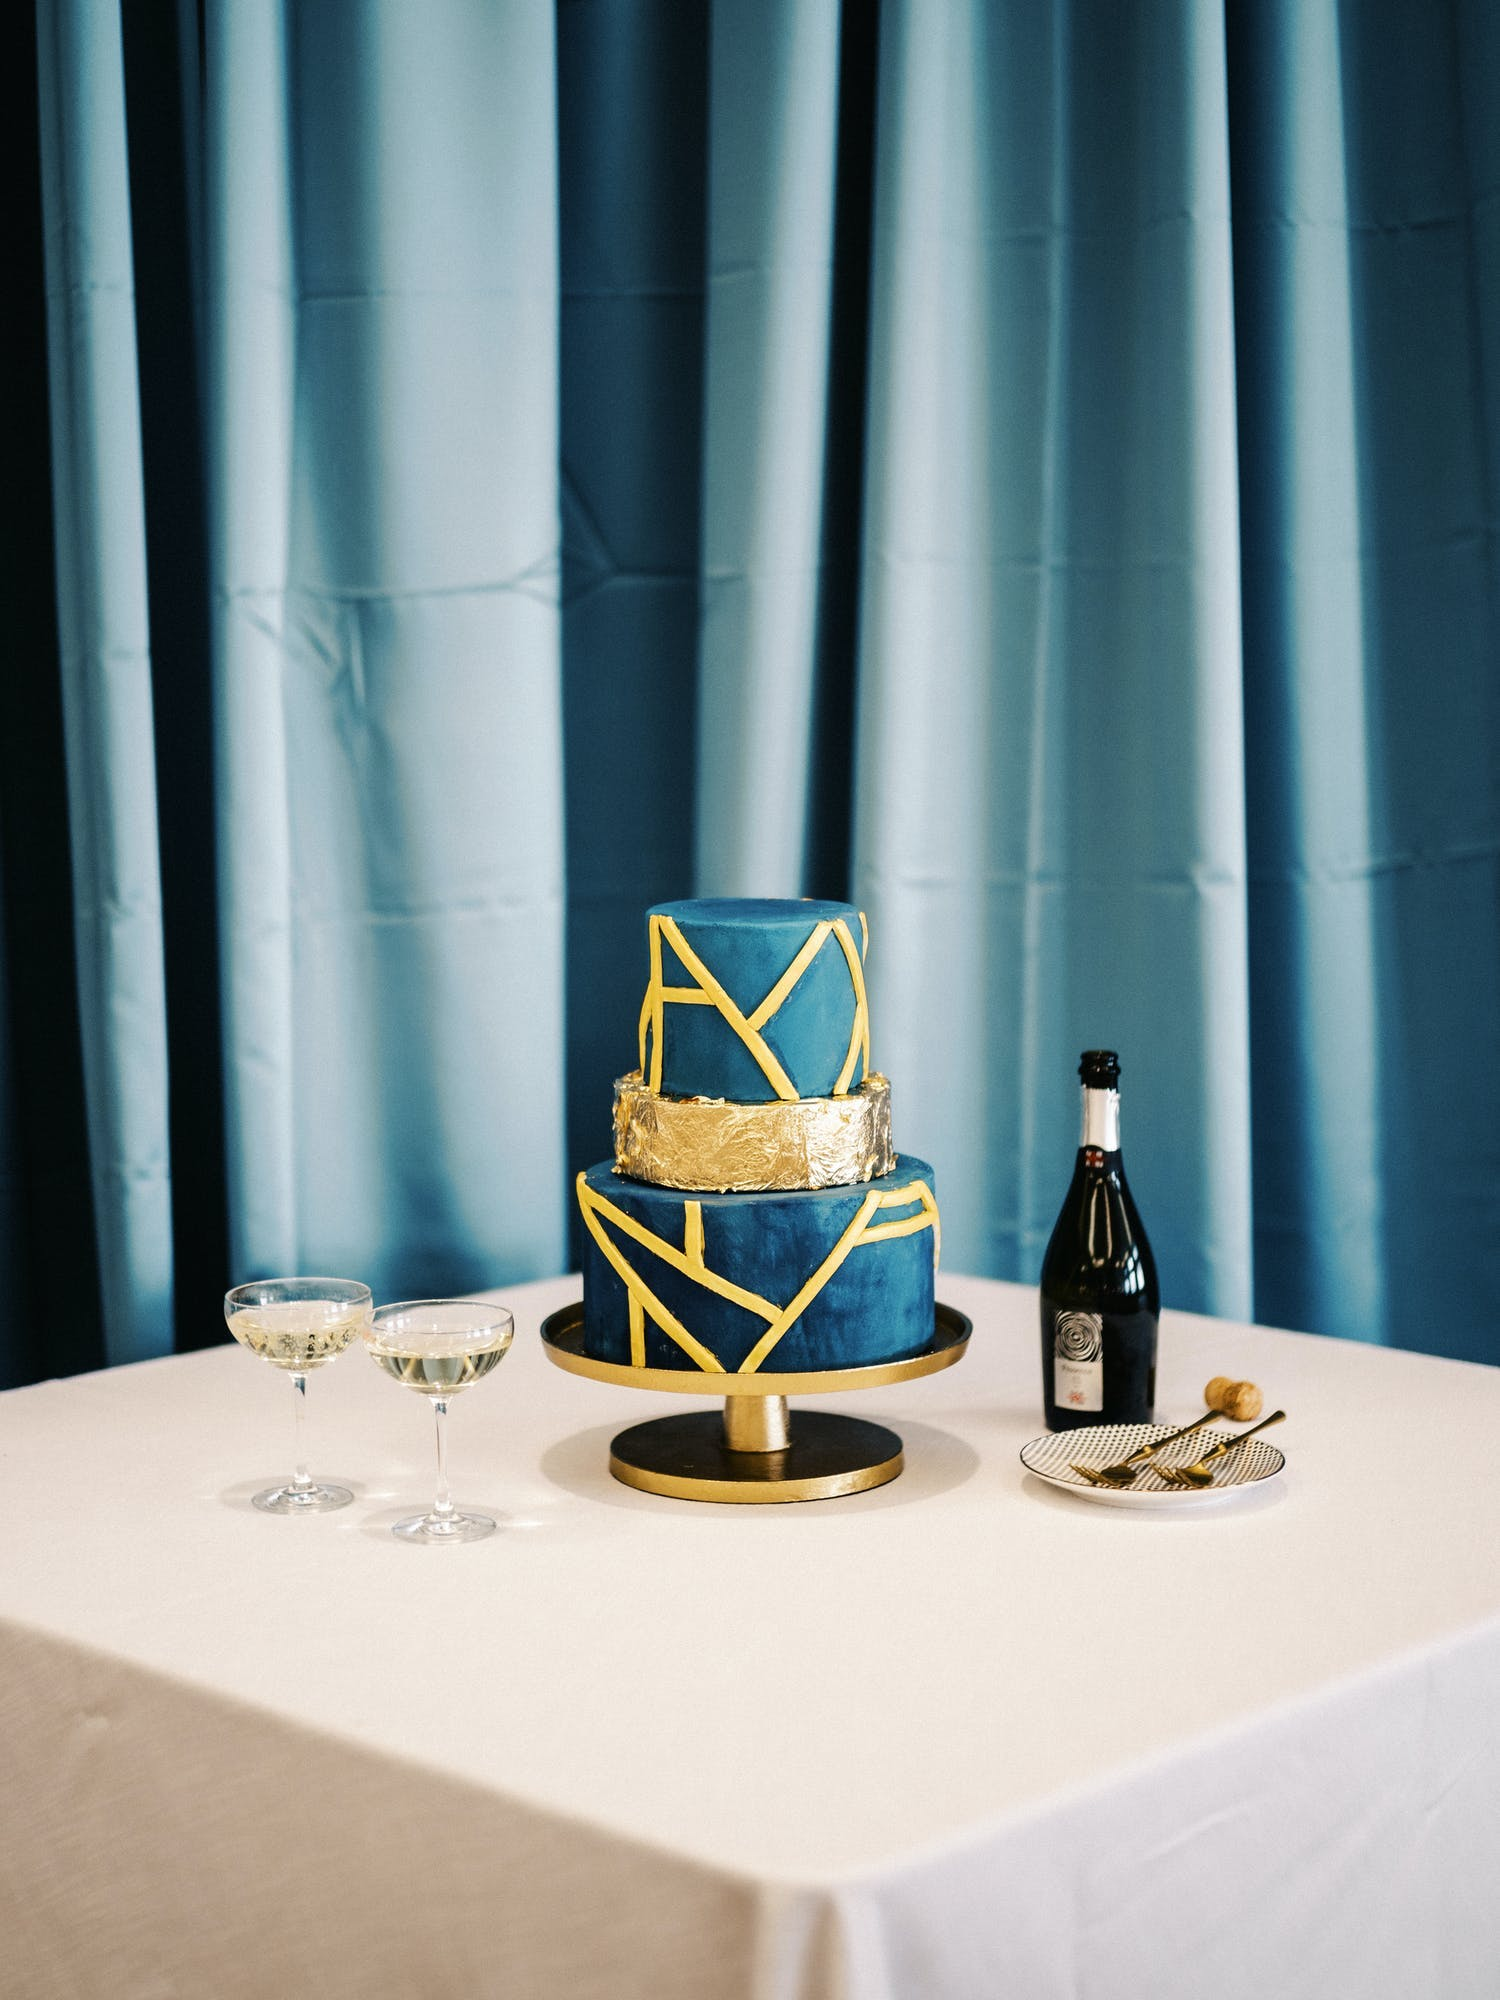 Three-tier blue and gold wedding cake with asymmetrical faceted shapes | PartySlate